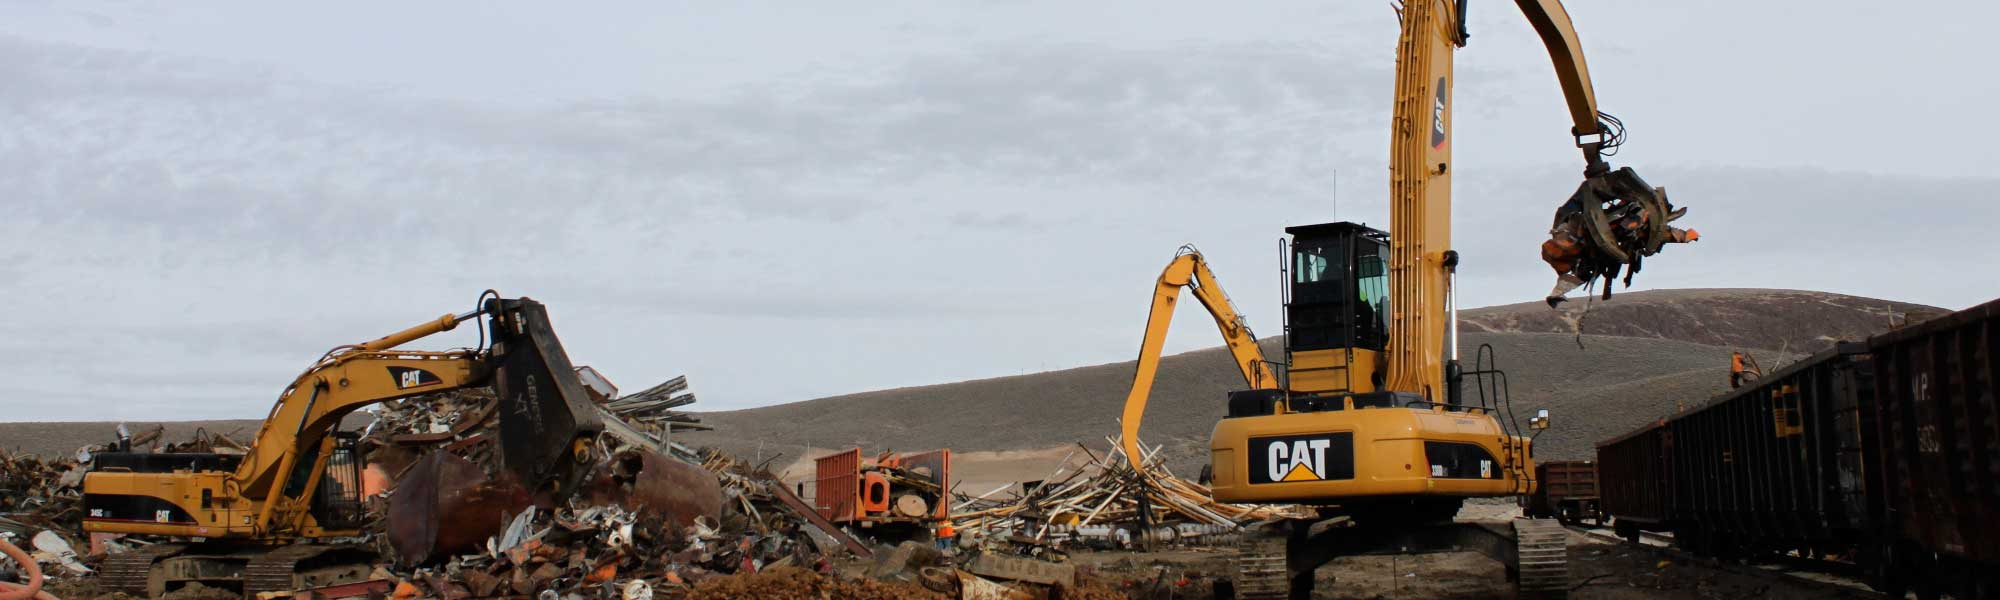 scrap metal recycling center being moved